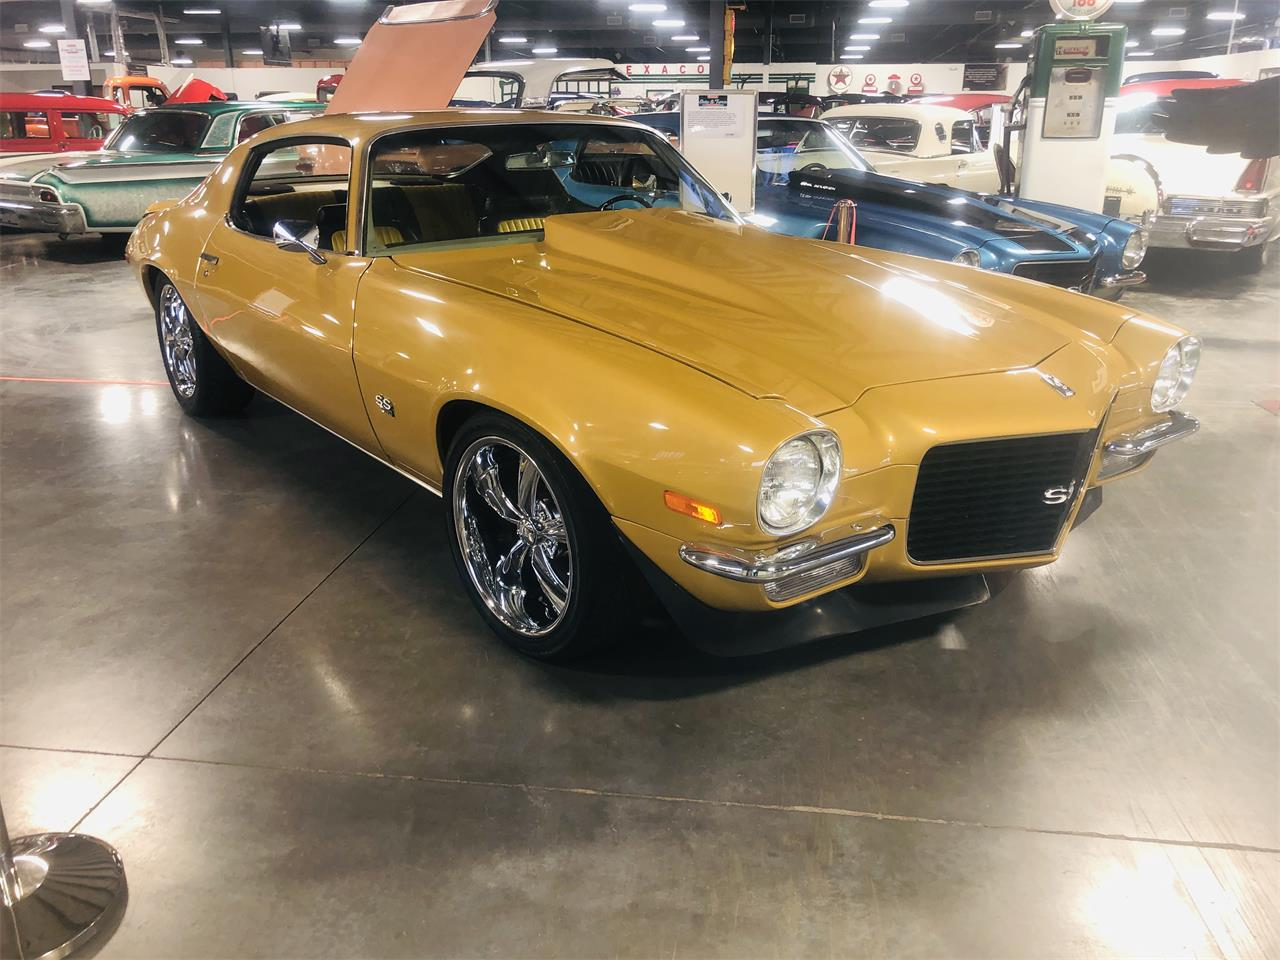 Large Picture of '70 Chevrolet Camaro SS located in BRANSON Missouri Offered by Branson Auto & Farm Museum - PCQC